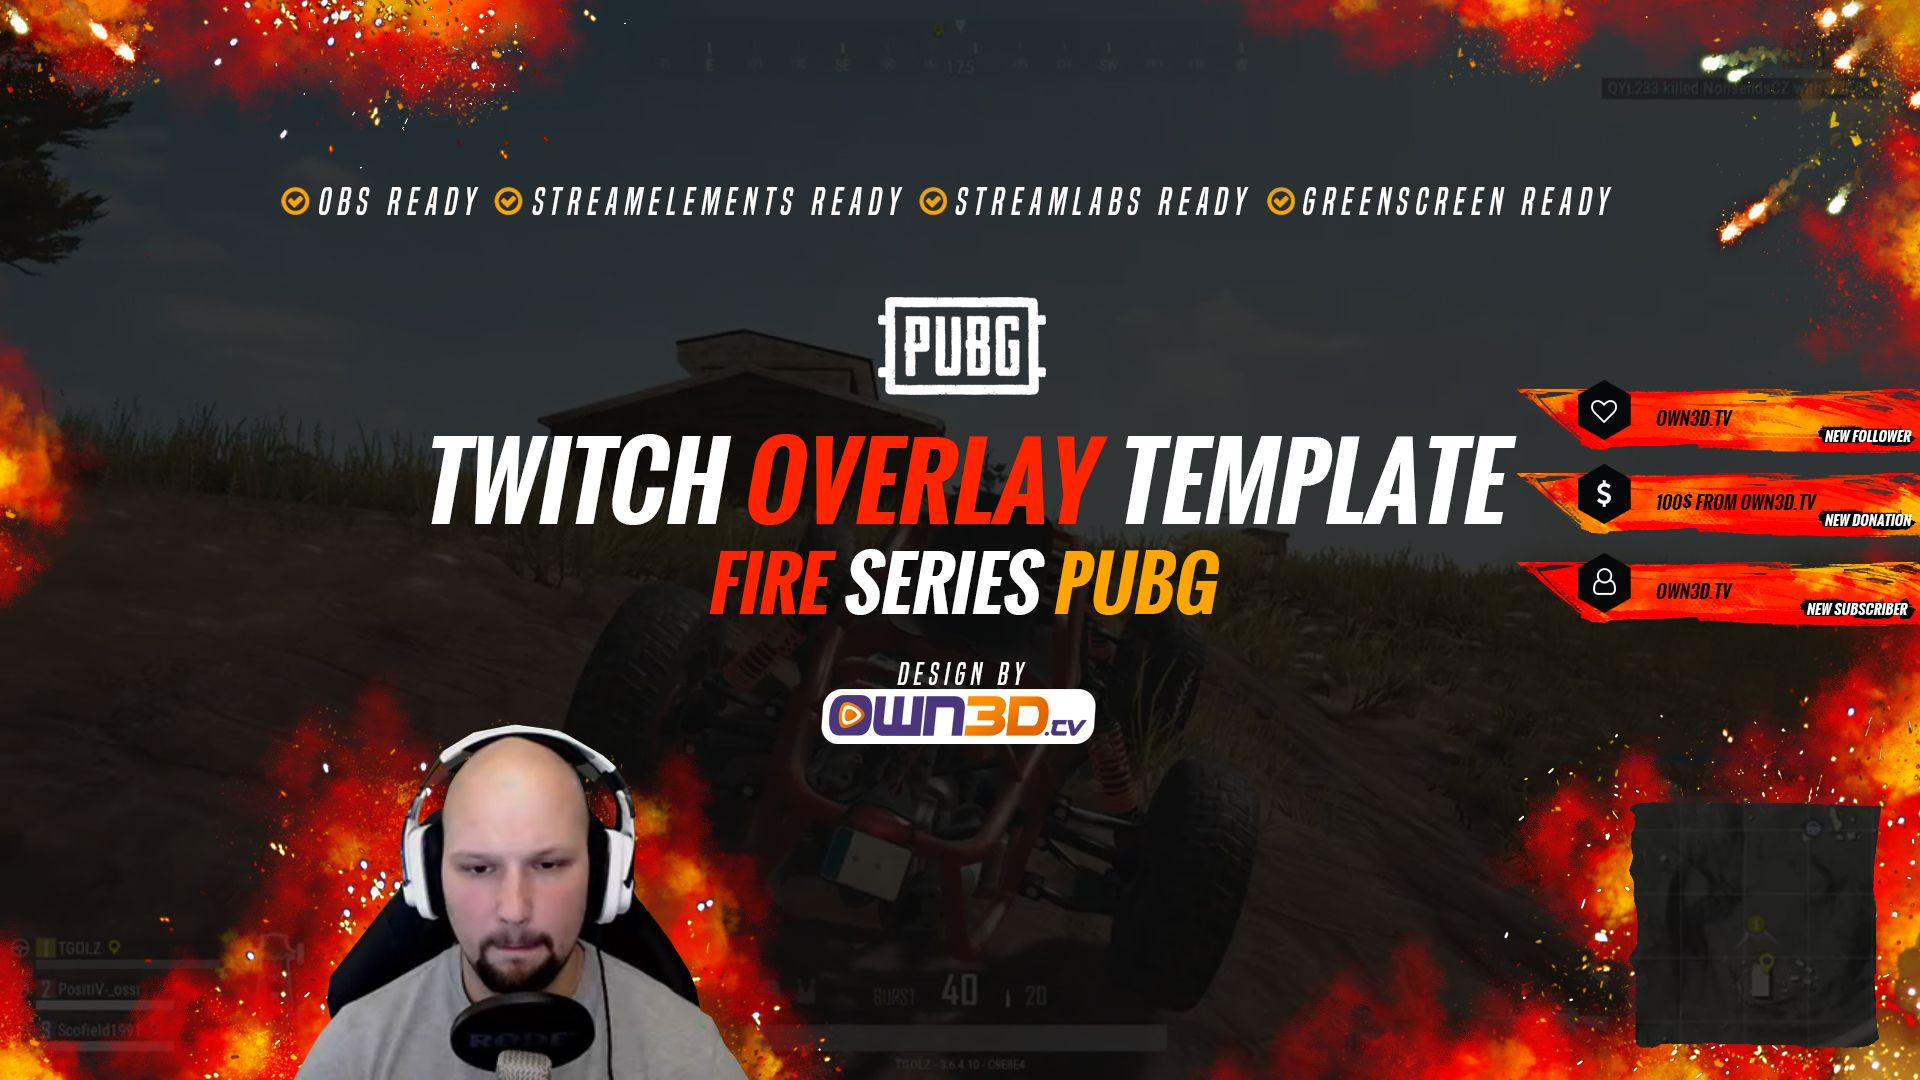 Twitch Overlay Template Fire Red Pubg Ownd Tv  Game Streaming Shop